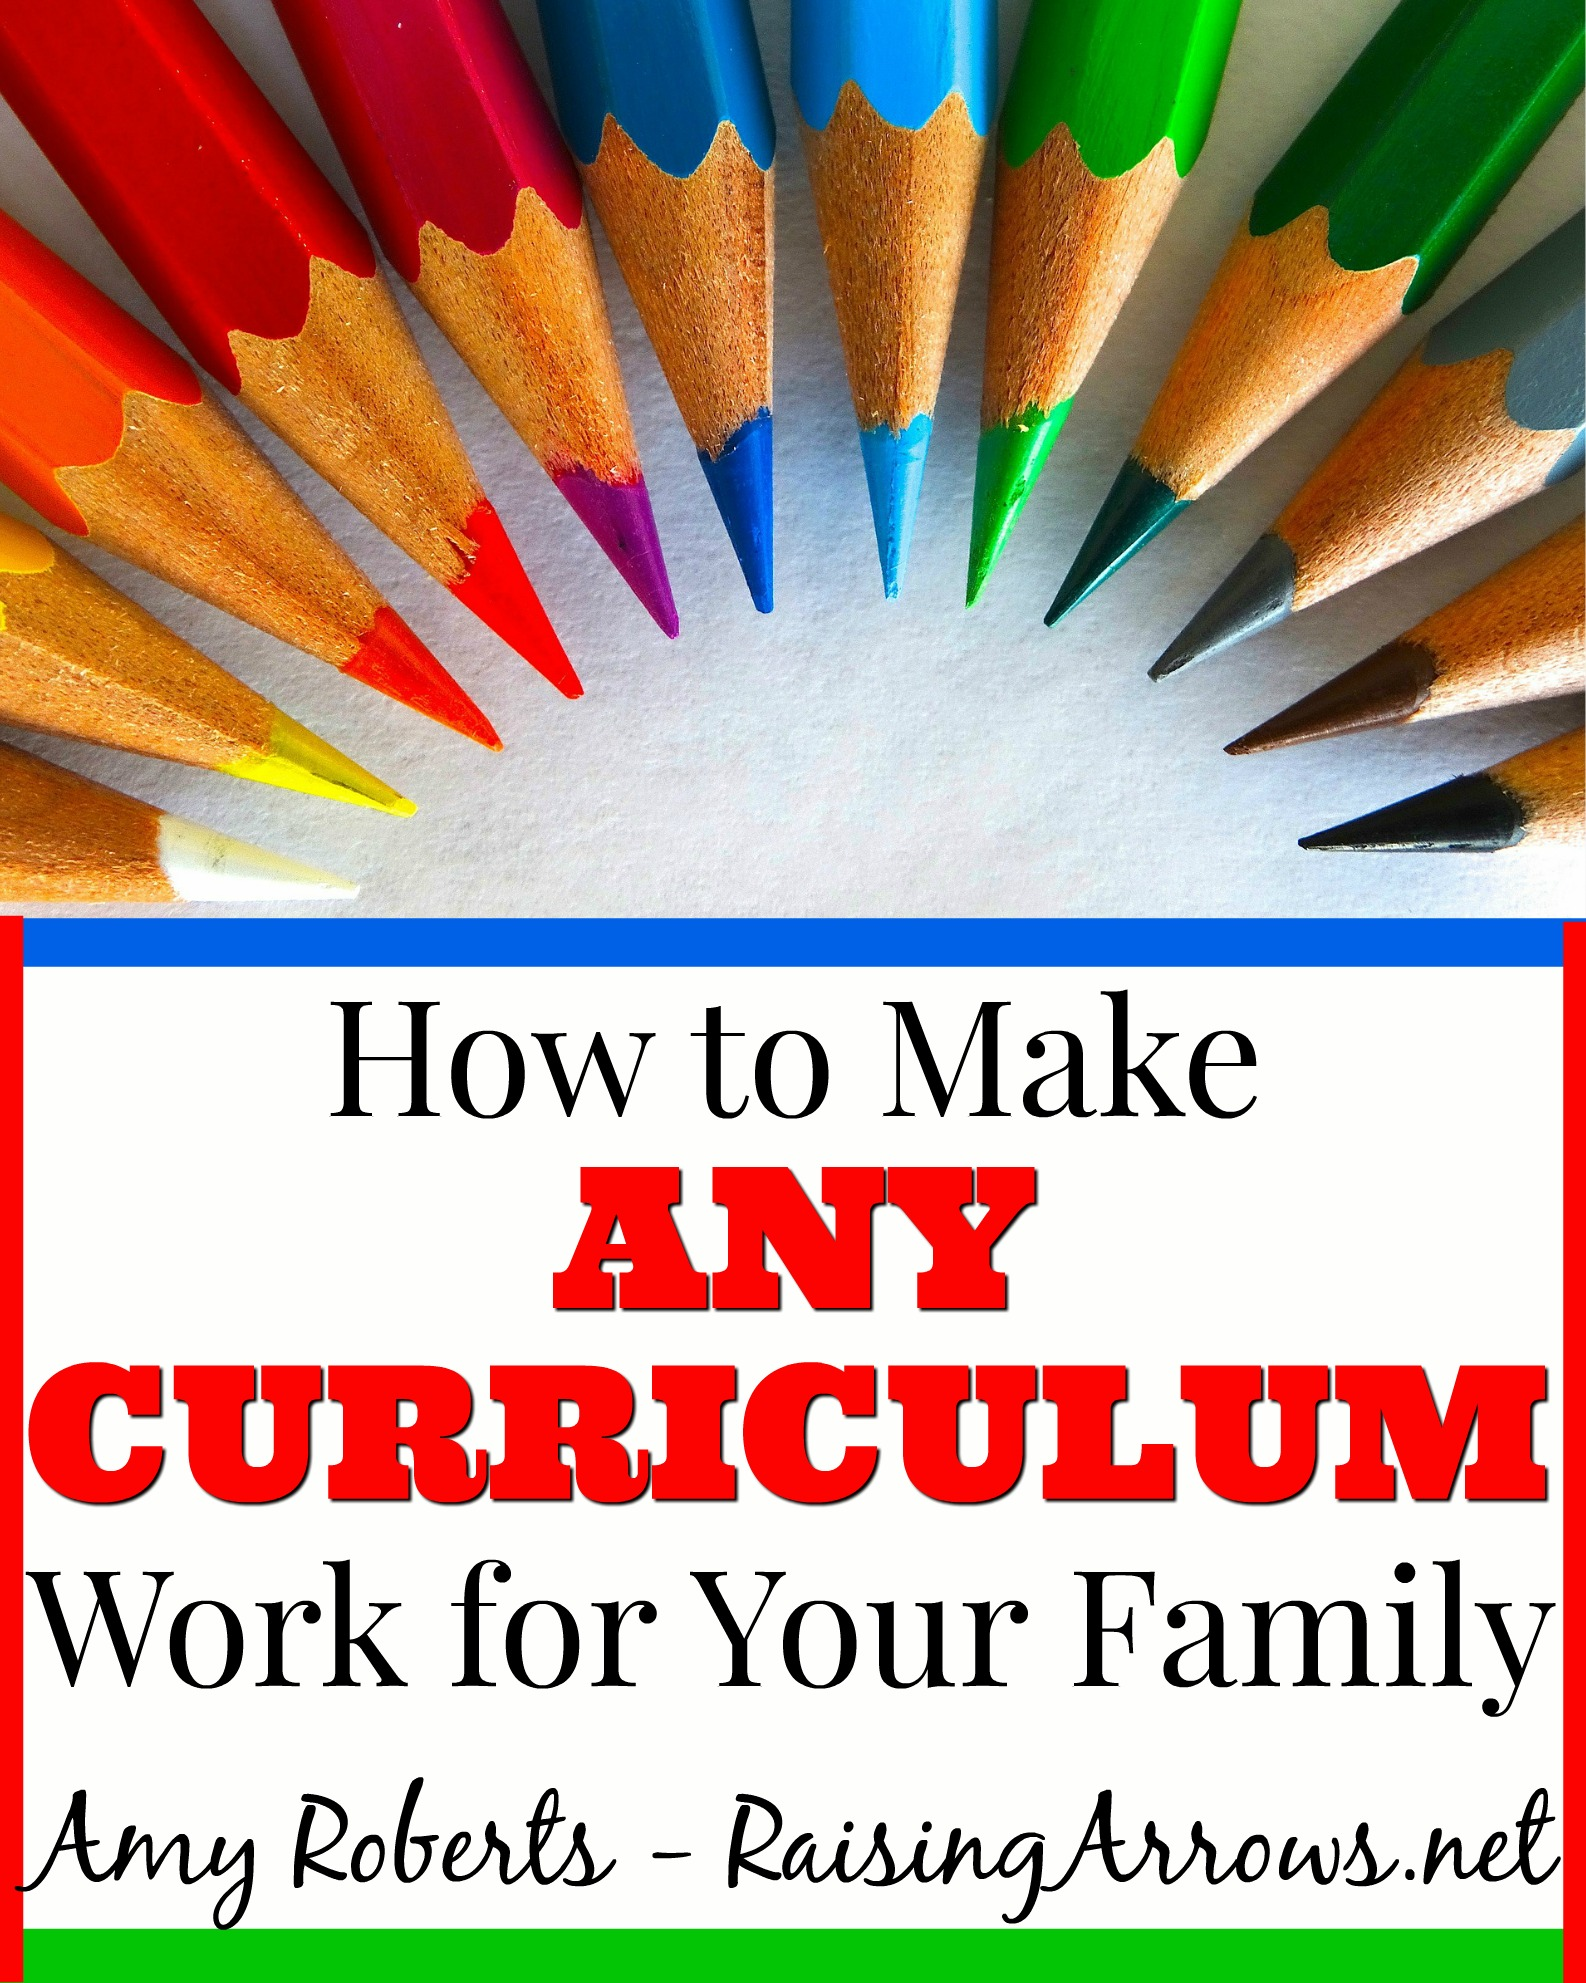 How to Make Any Curriculum Work for Your Family